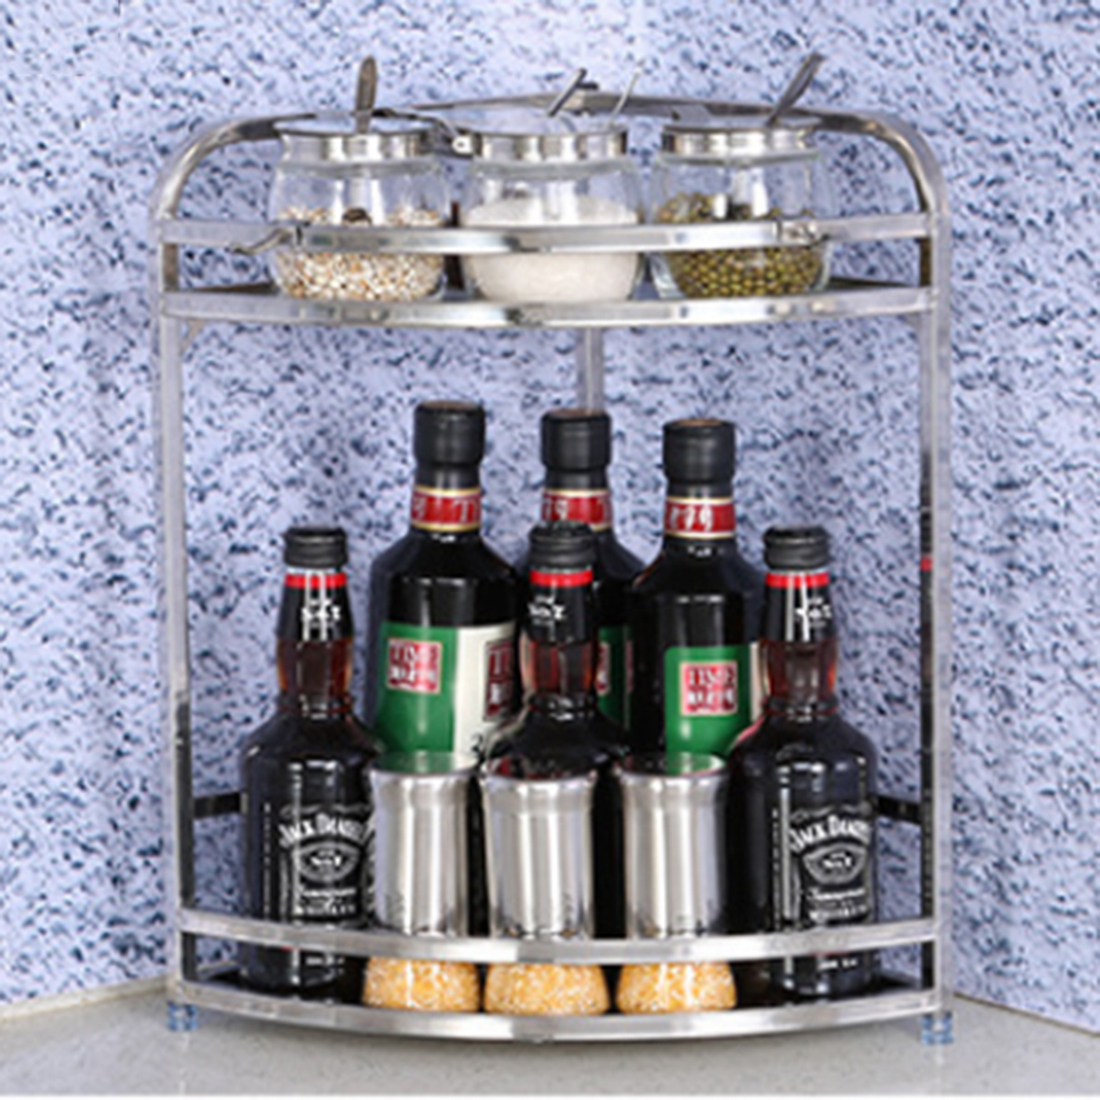 Durable Stainless Steel Storage Rack Kitchen Bathroom Spice Corner Shelf Home Storage Organization Silver